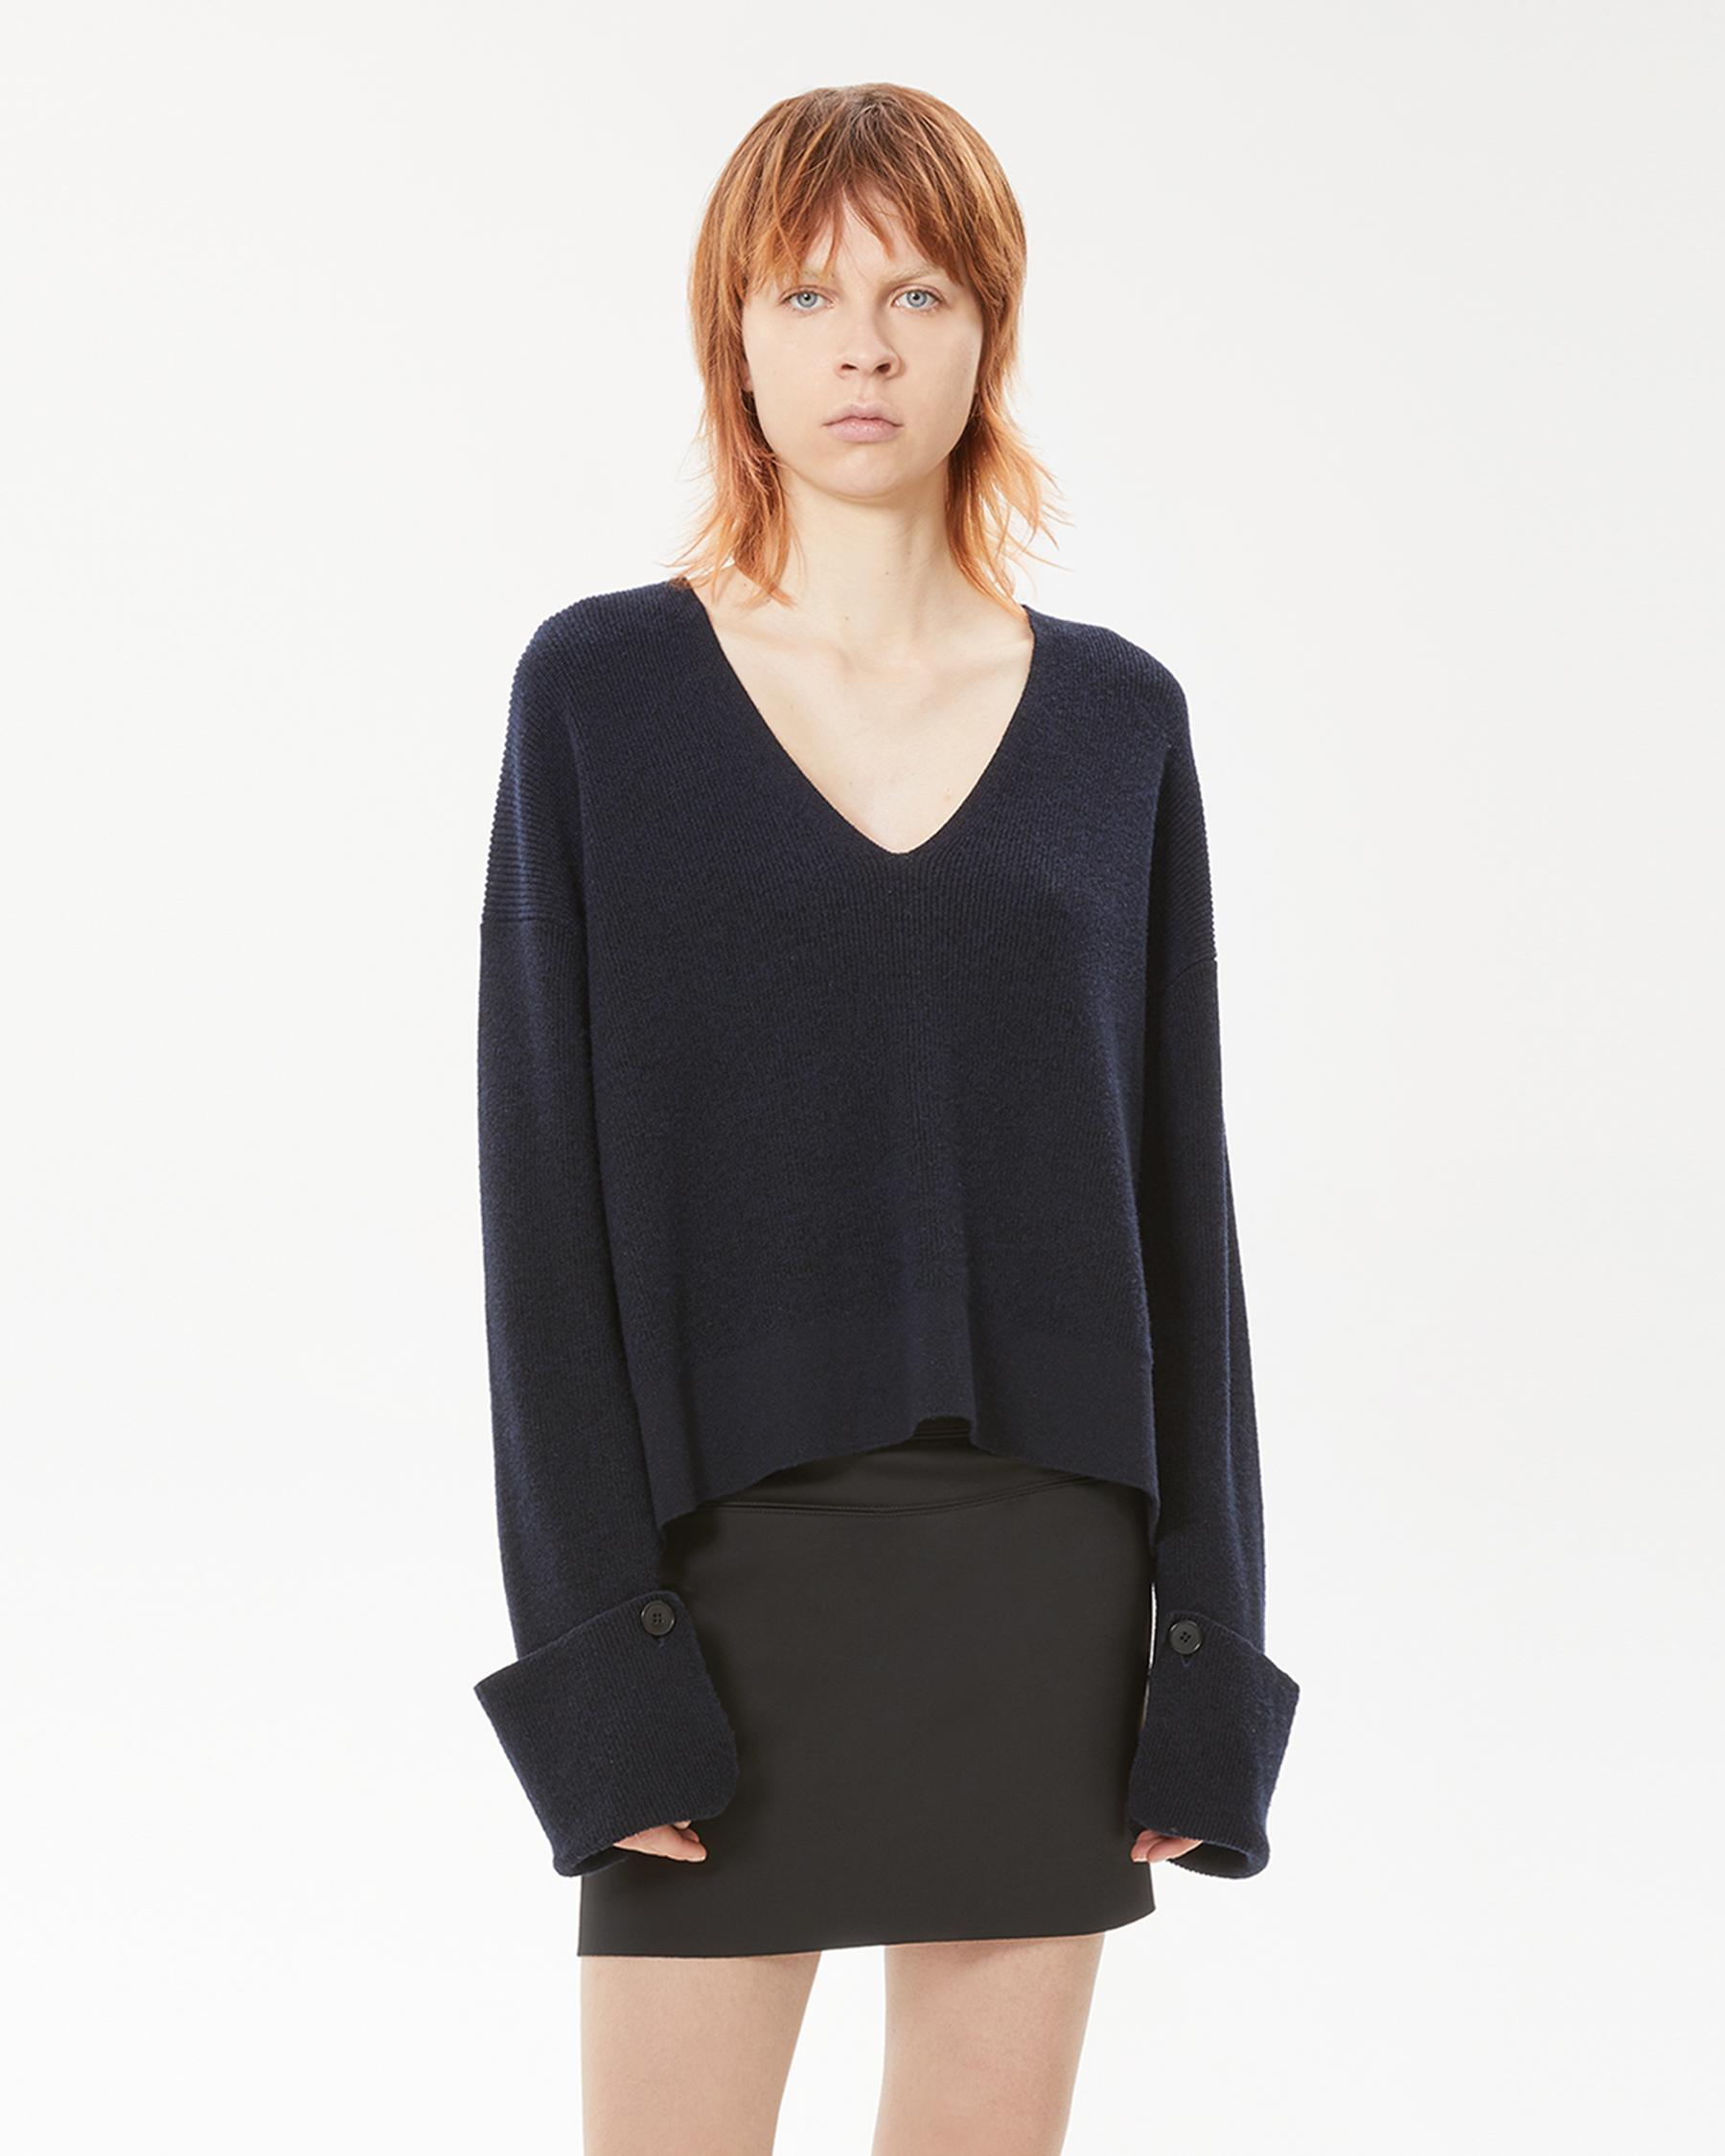 Helmut Lang 13 - Cotton Cash Sweater